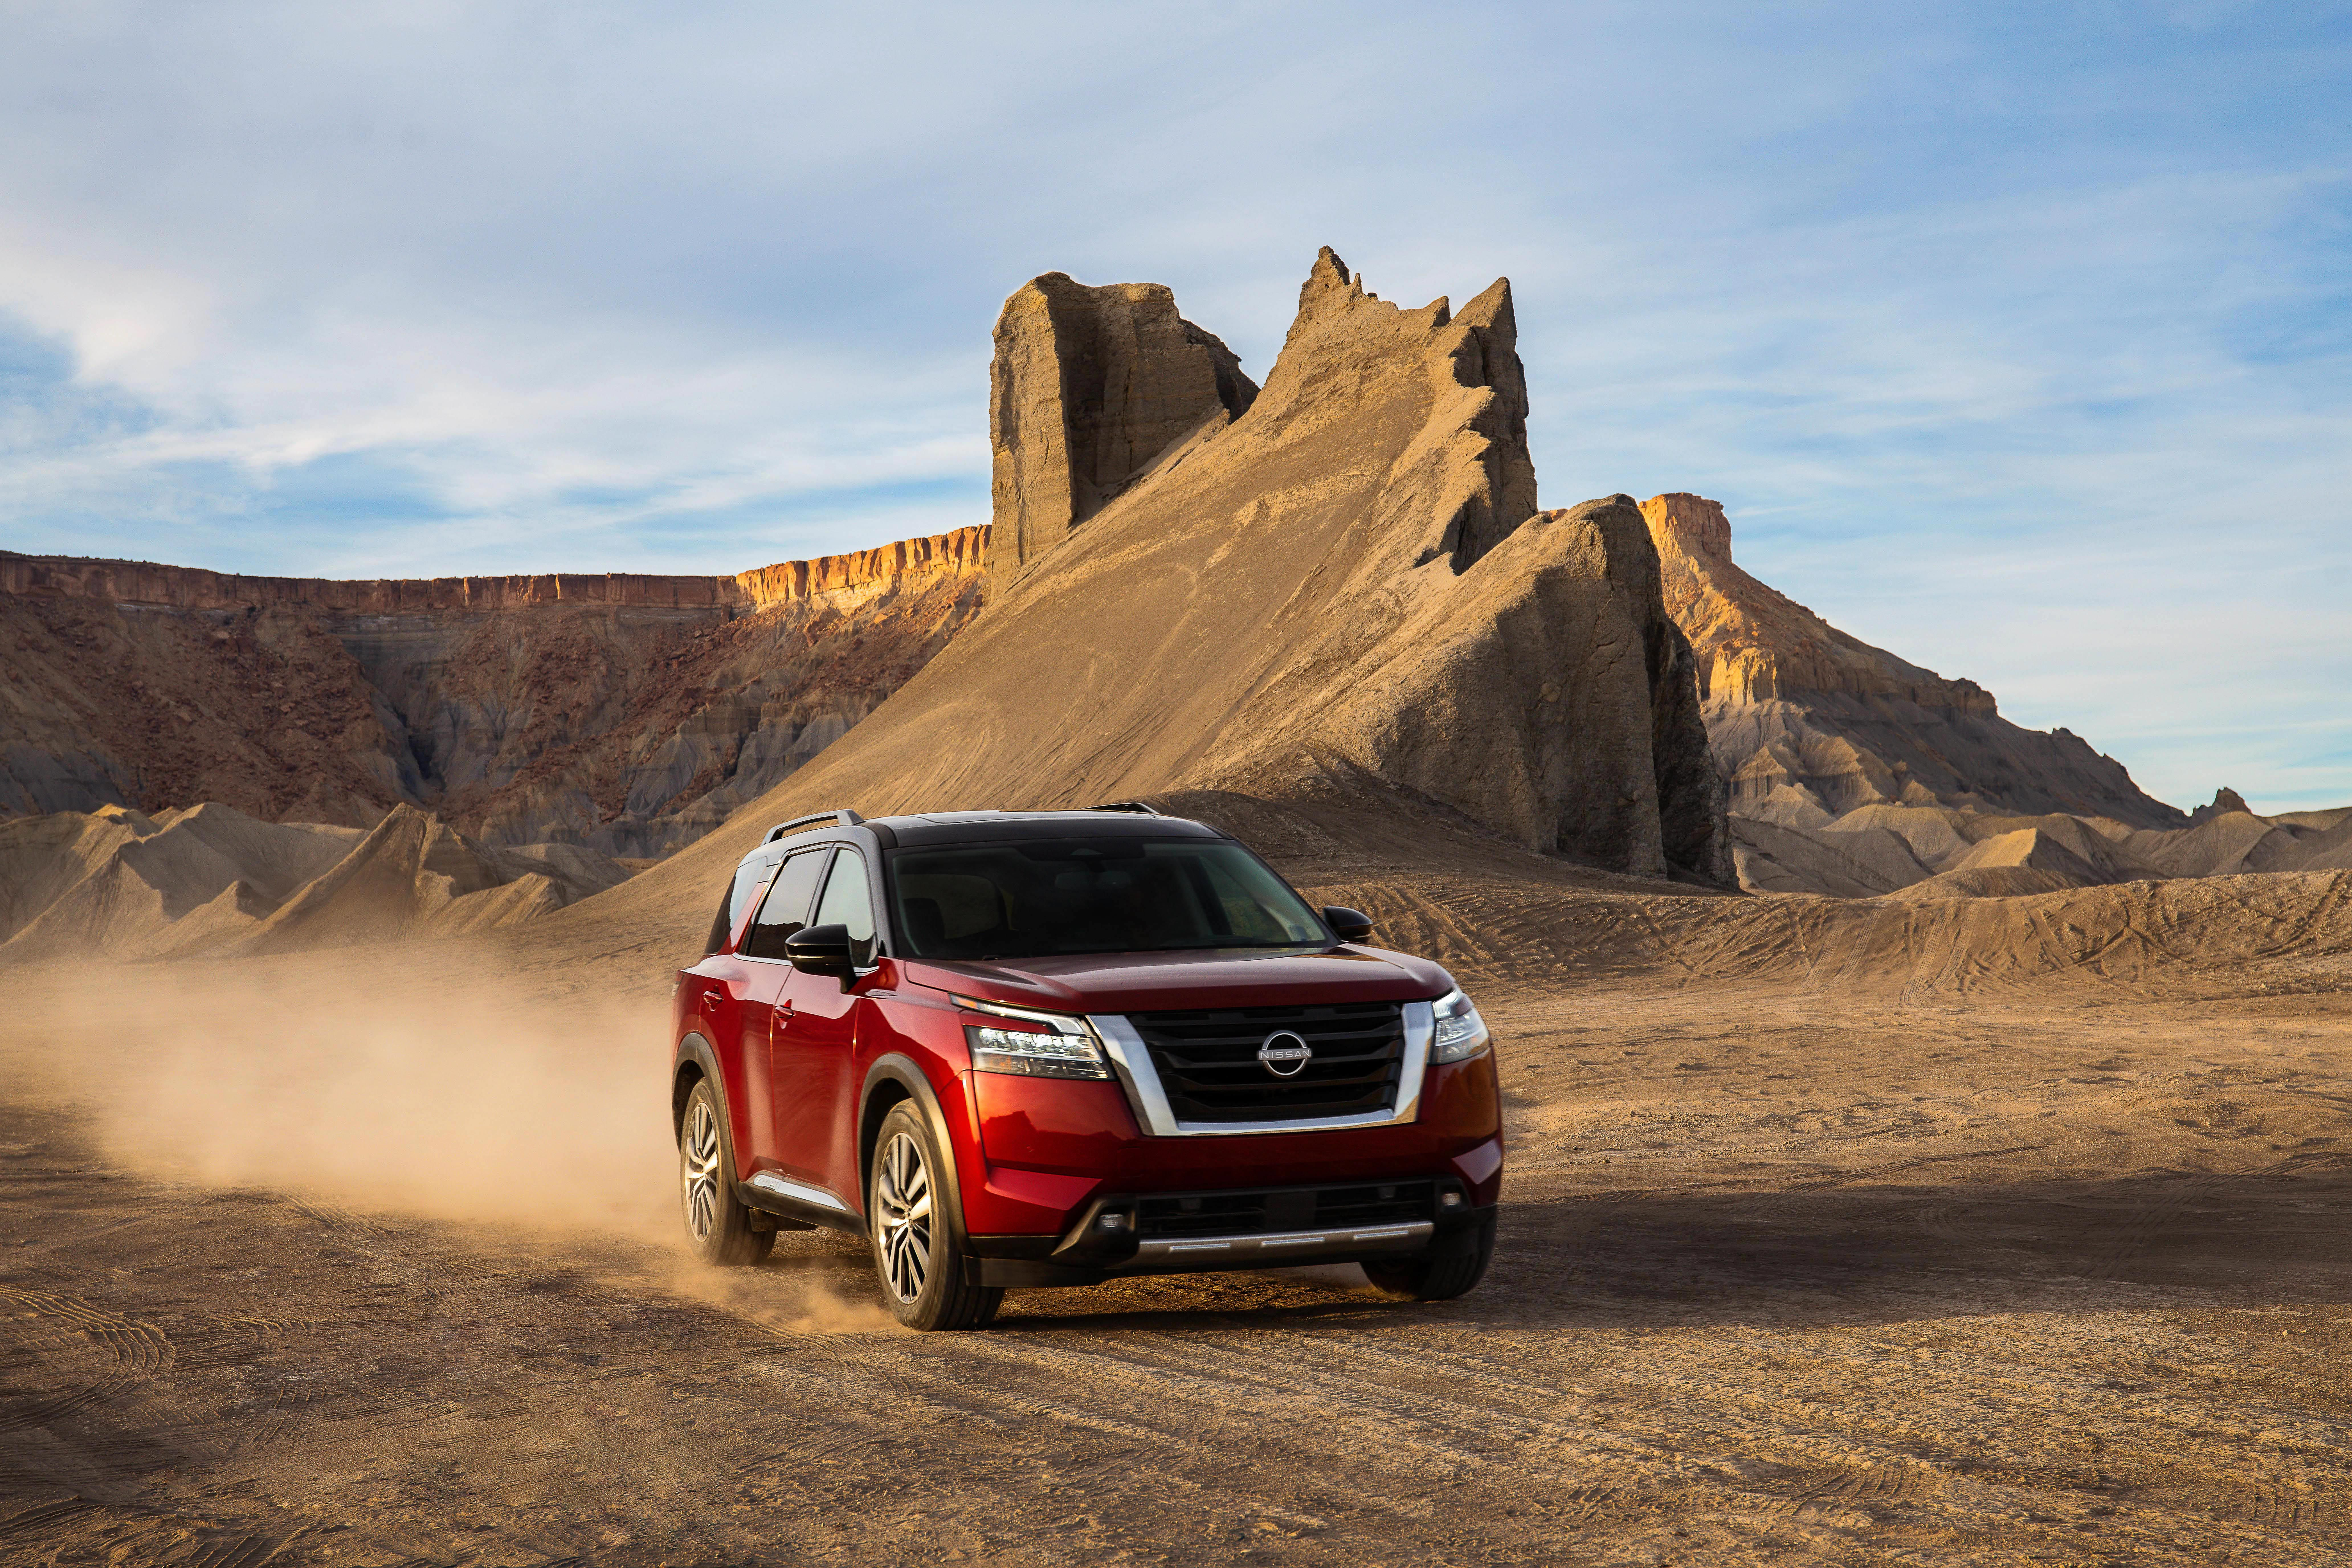 2022 Nissan Pathfinder What We Know So Far